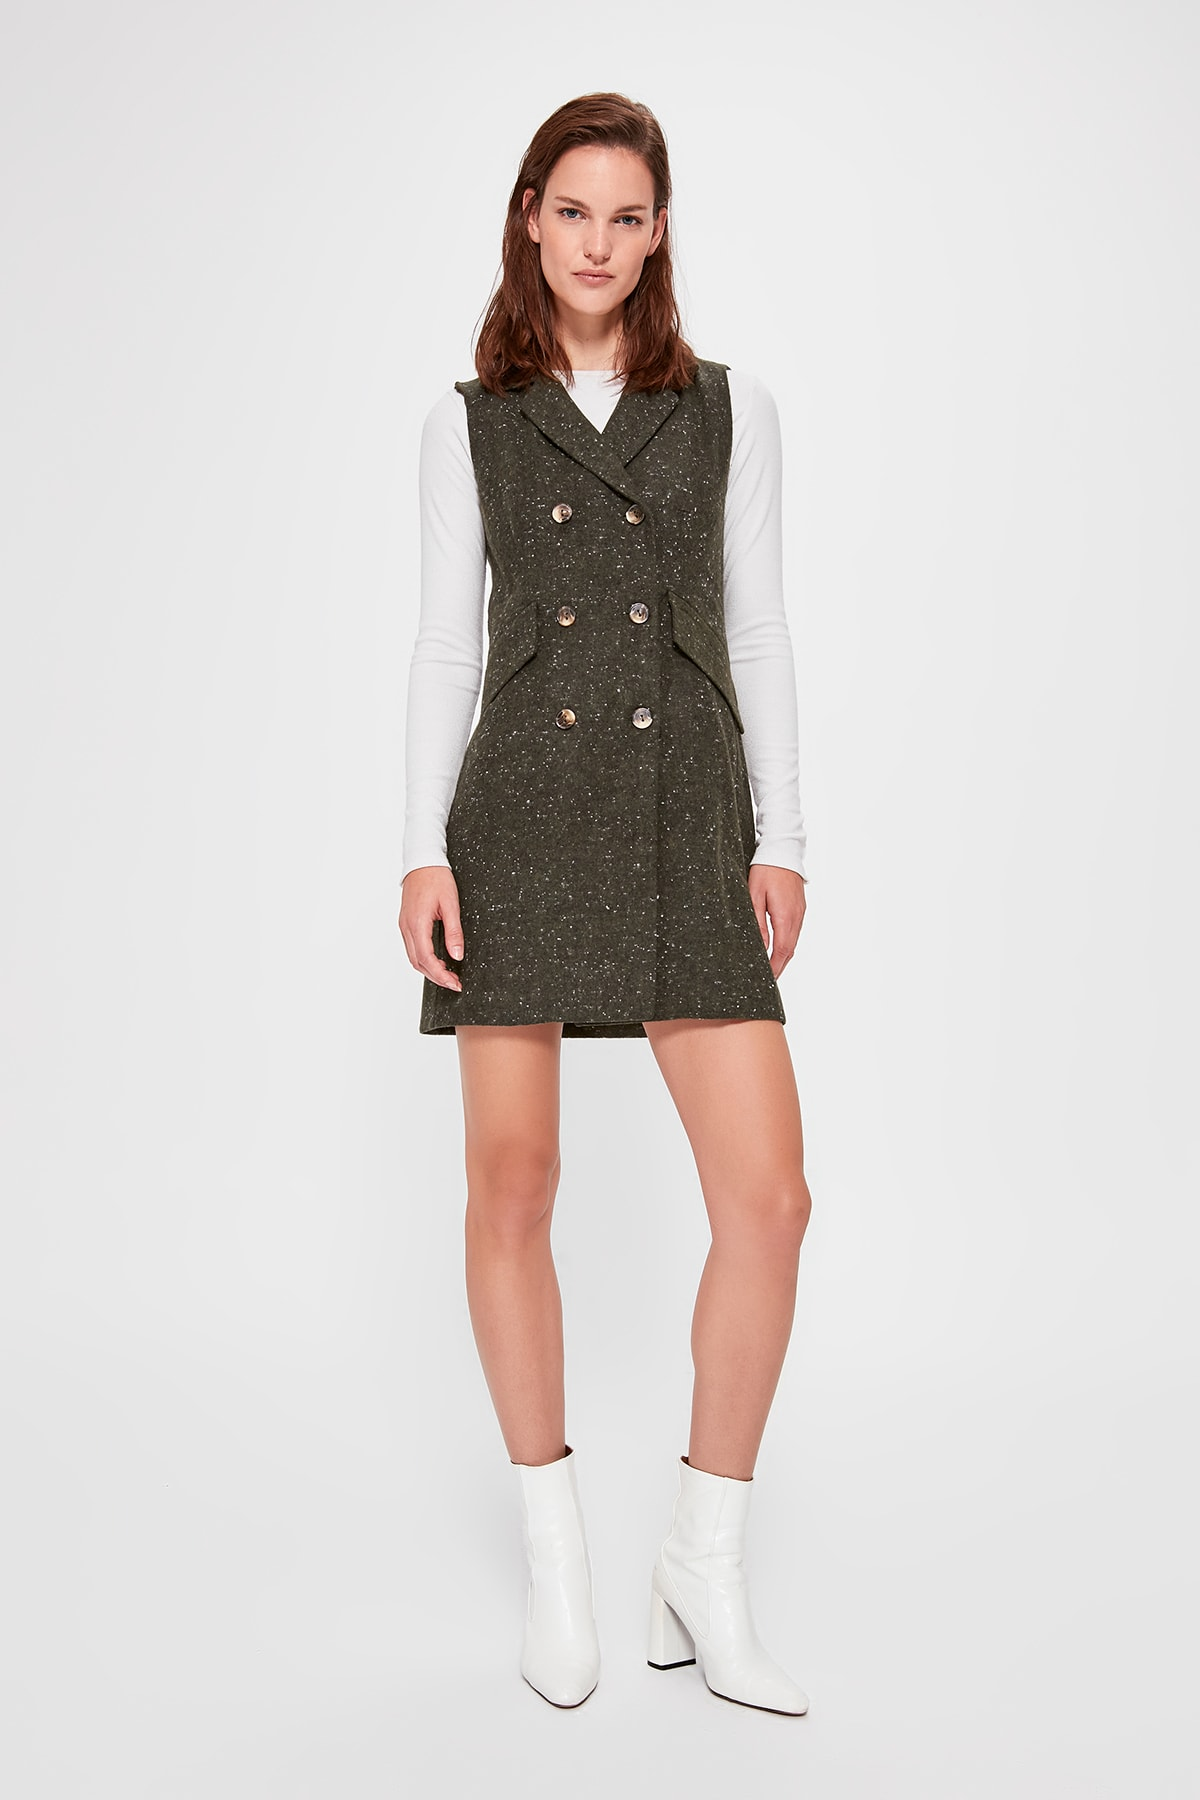 Trendyol Gilet With Pockets Dress TWOAW20EL1261